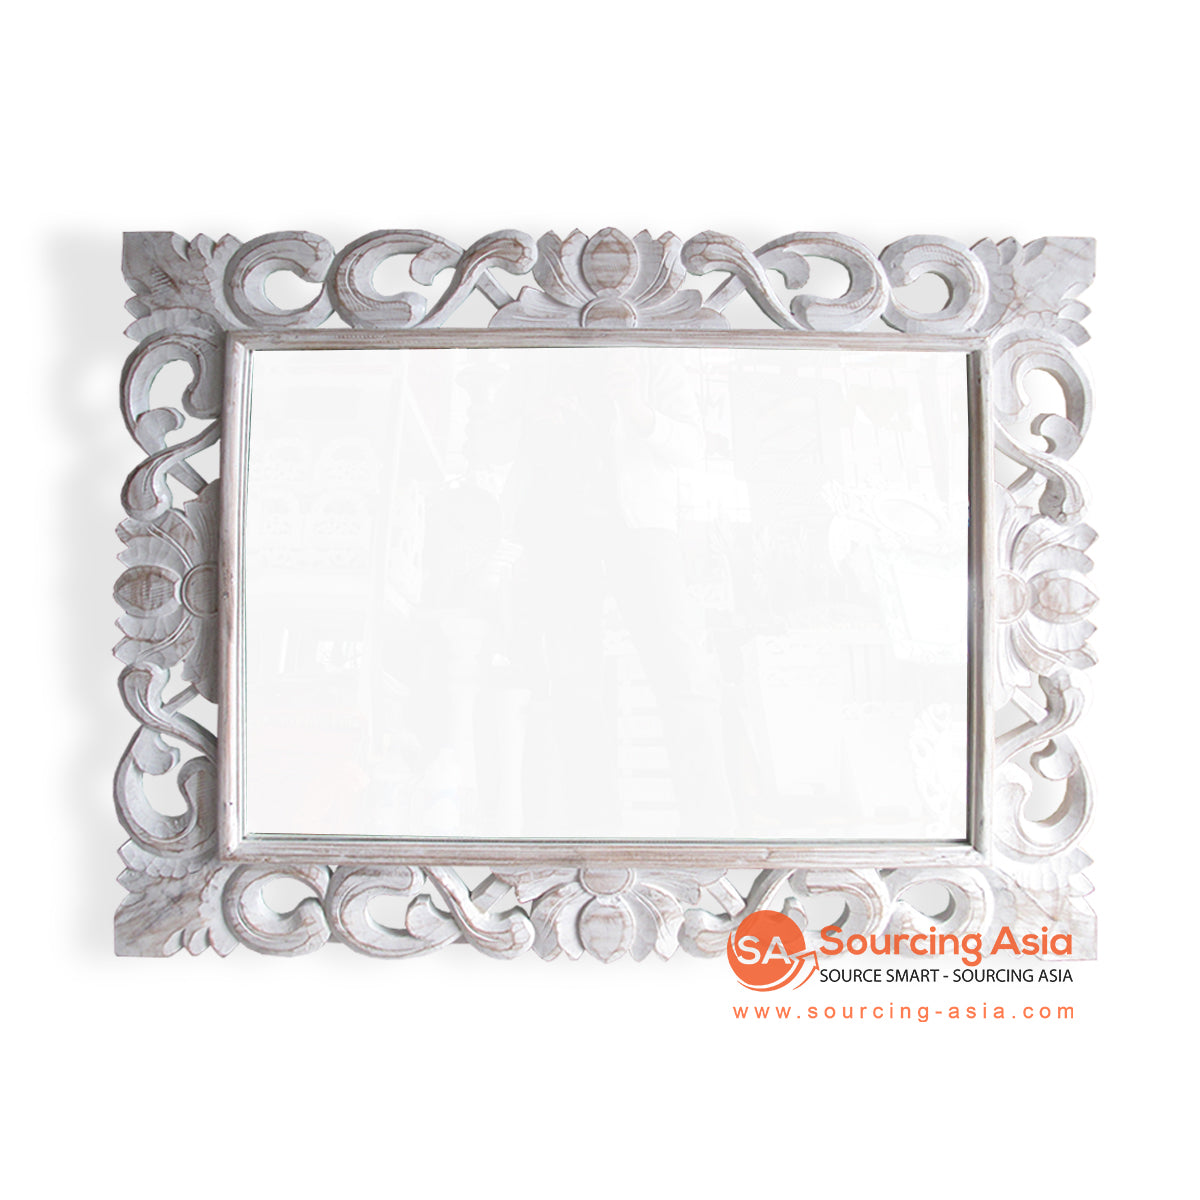 SSU012-110 WOODEN MIRROR WITH CARVING